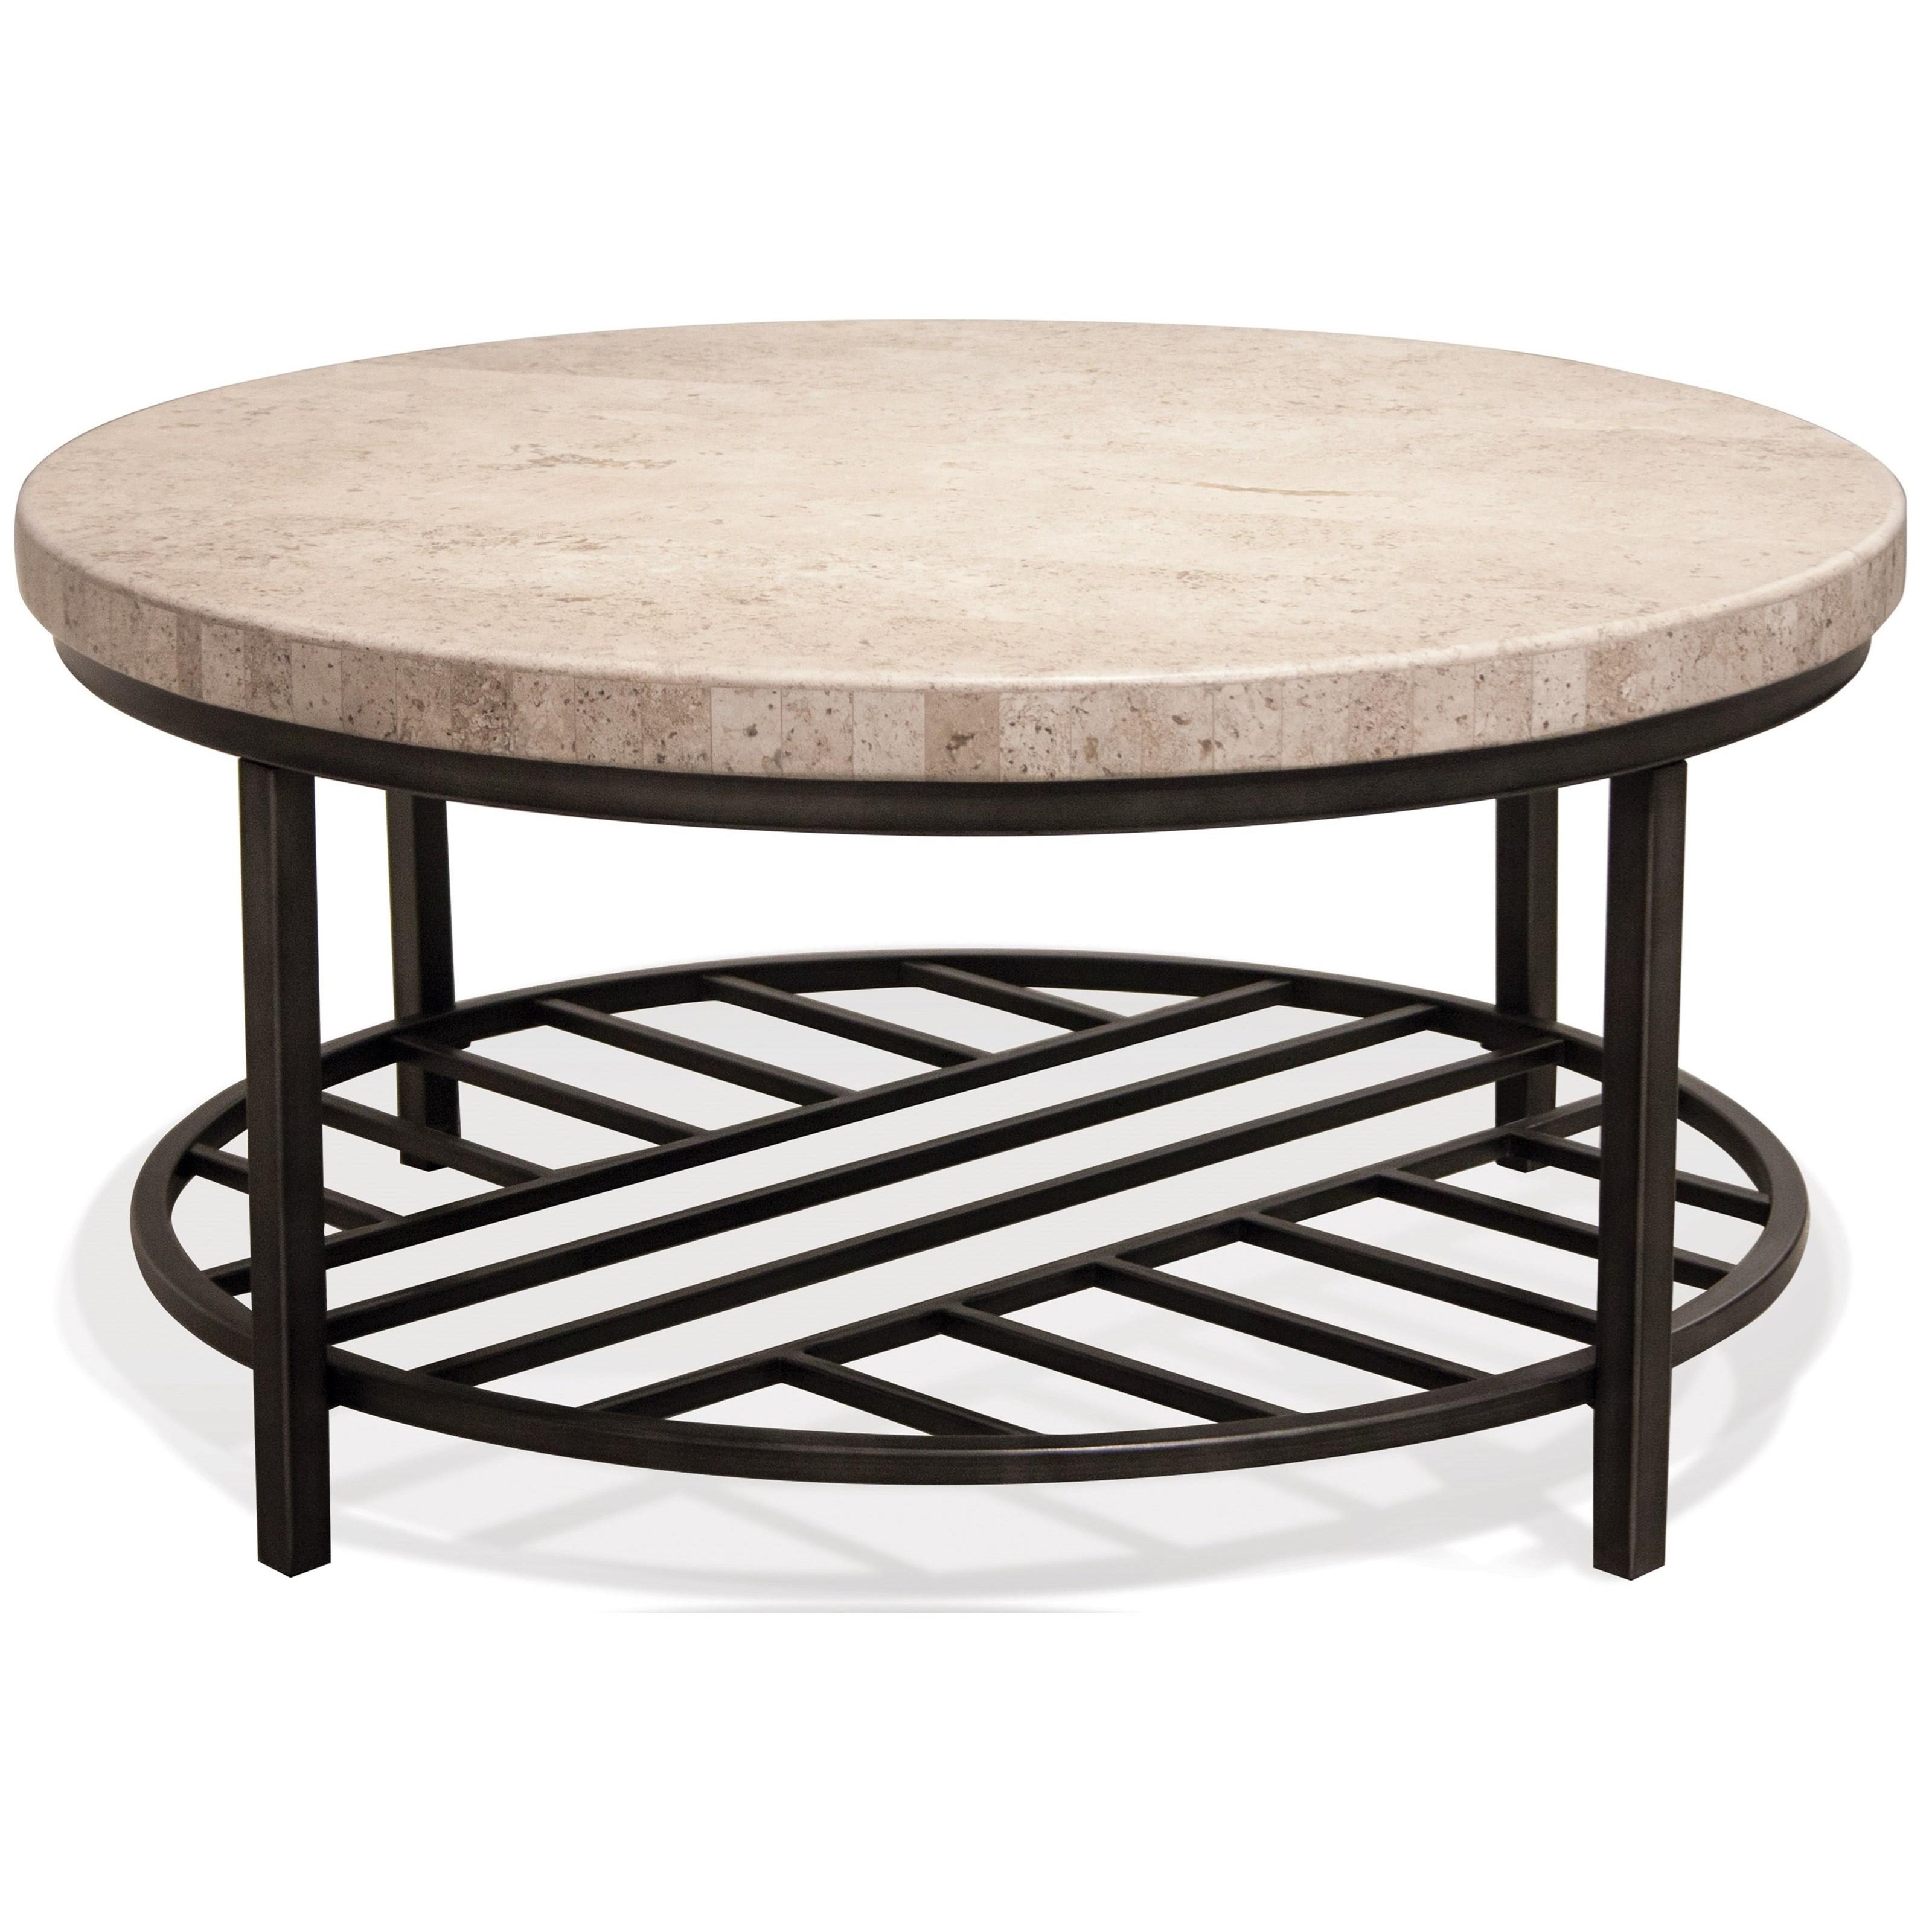 Riverside Furniture Capri 77701 Round Cocktail Table With